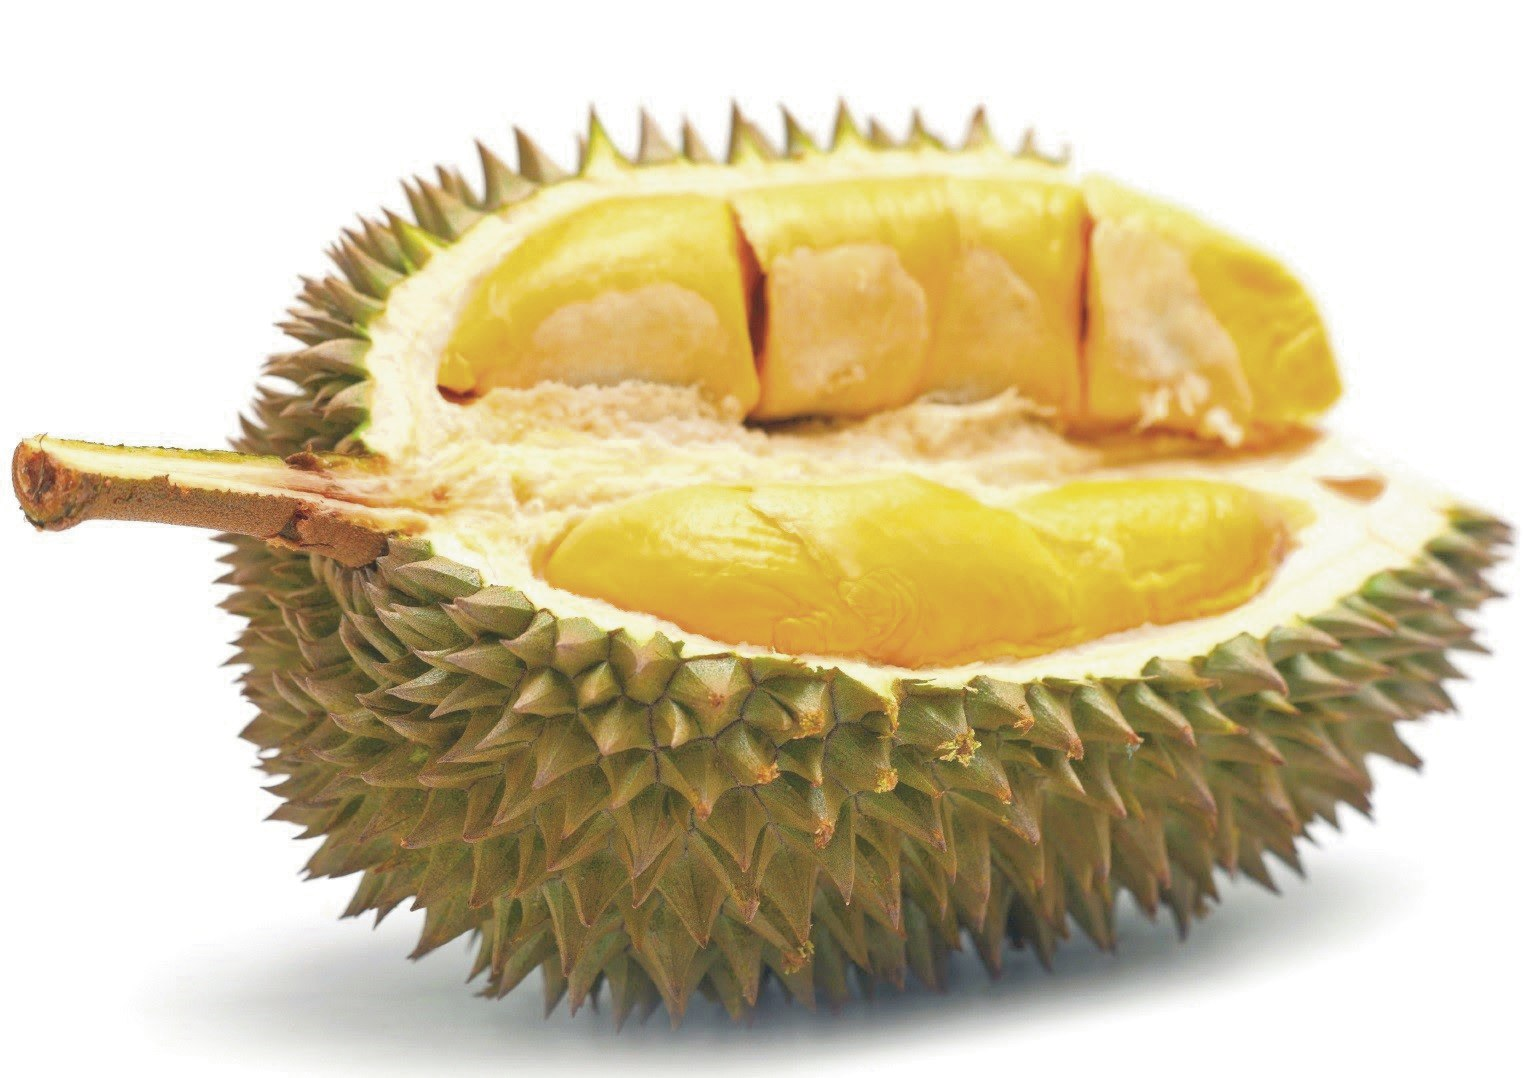 Beautiful durian